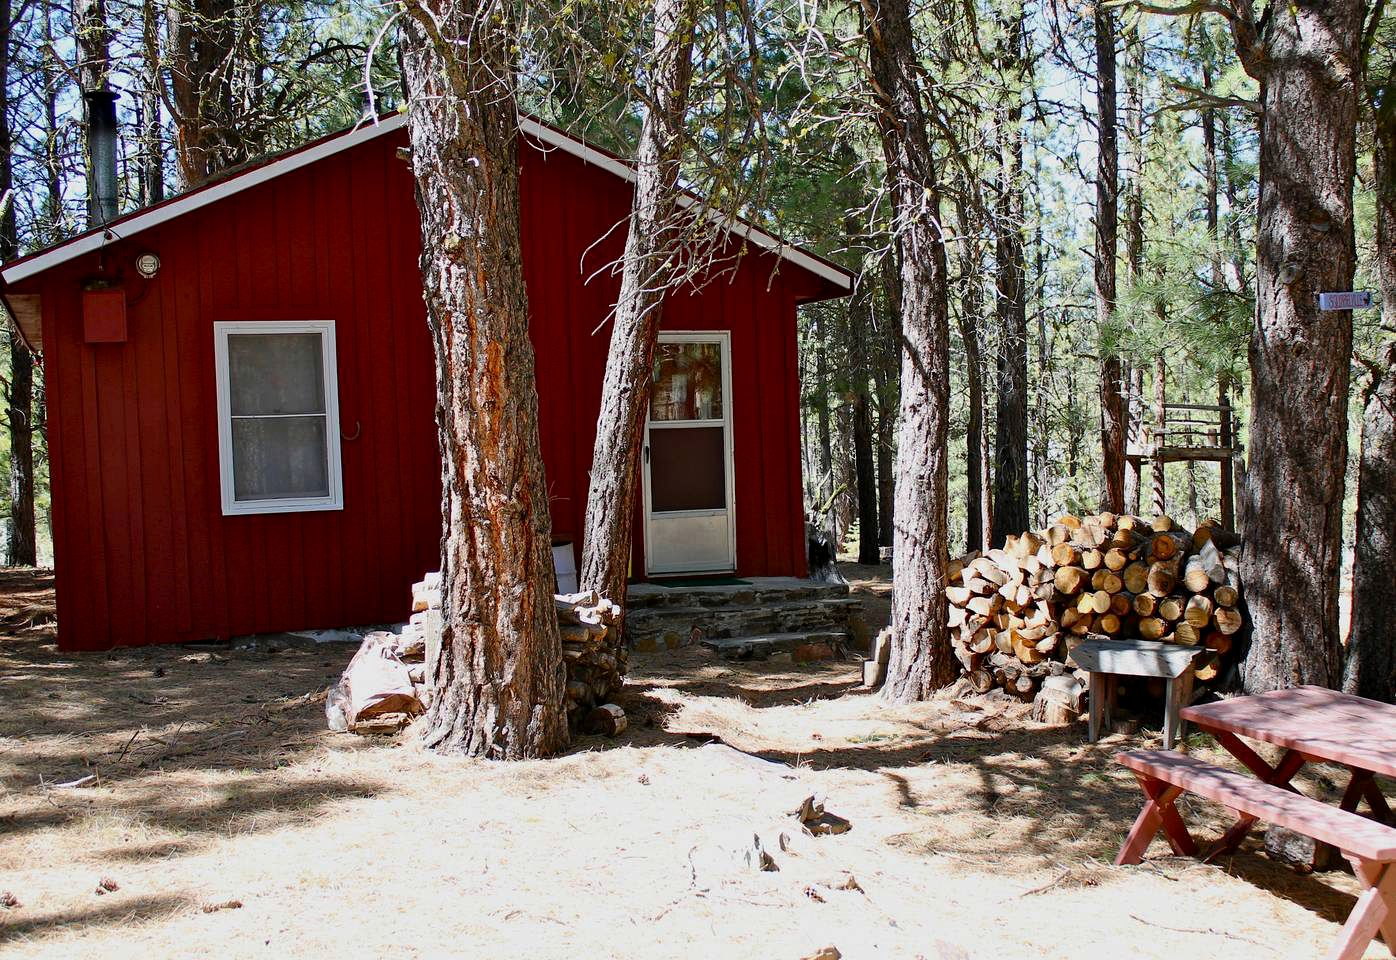 Cabins (Lakeview, Oregon, United States)